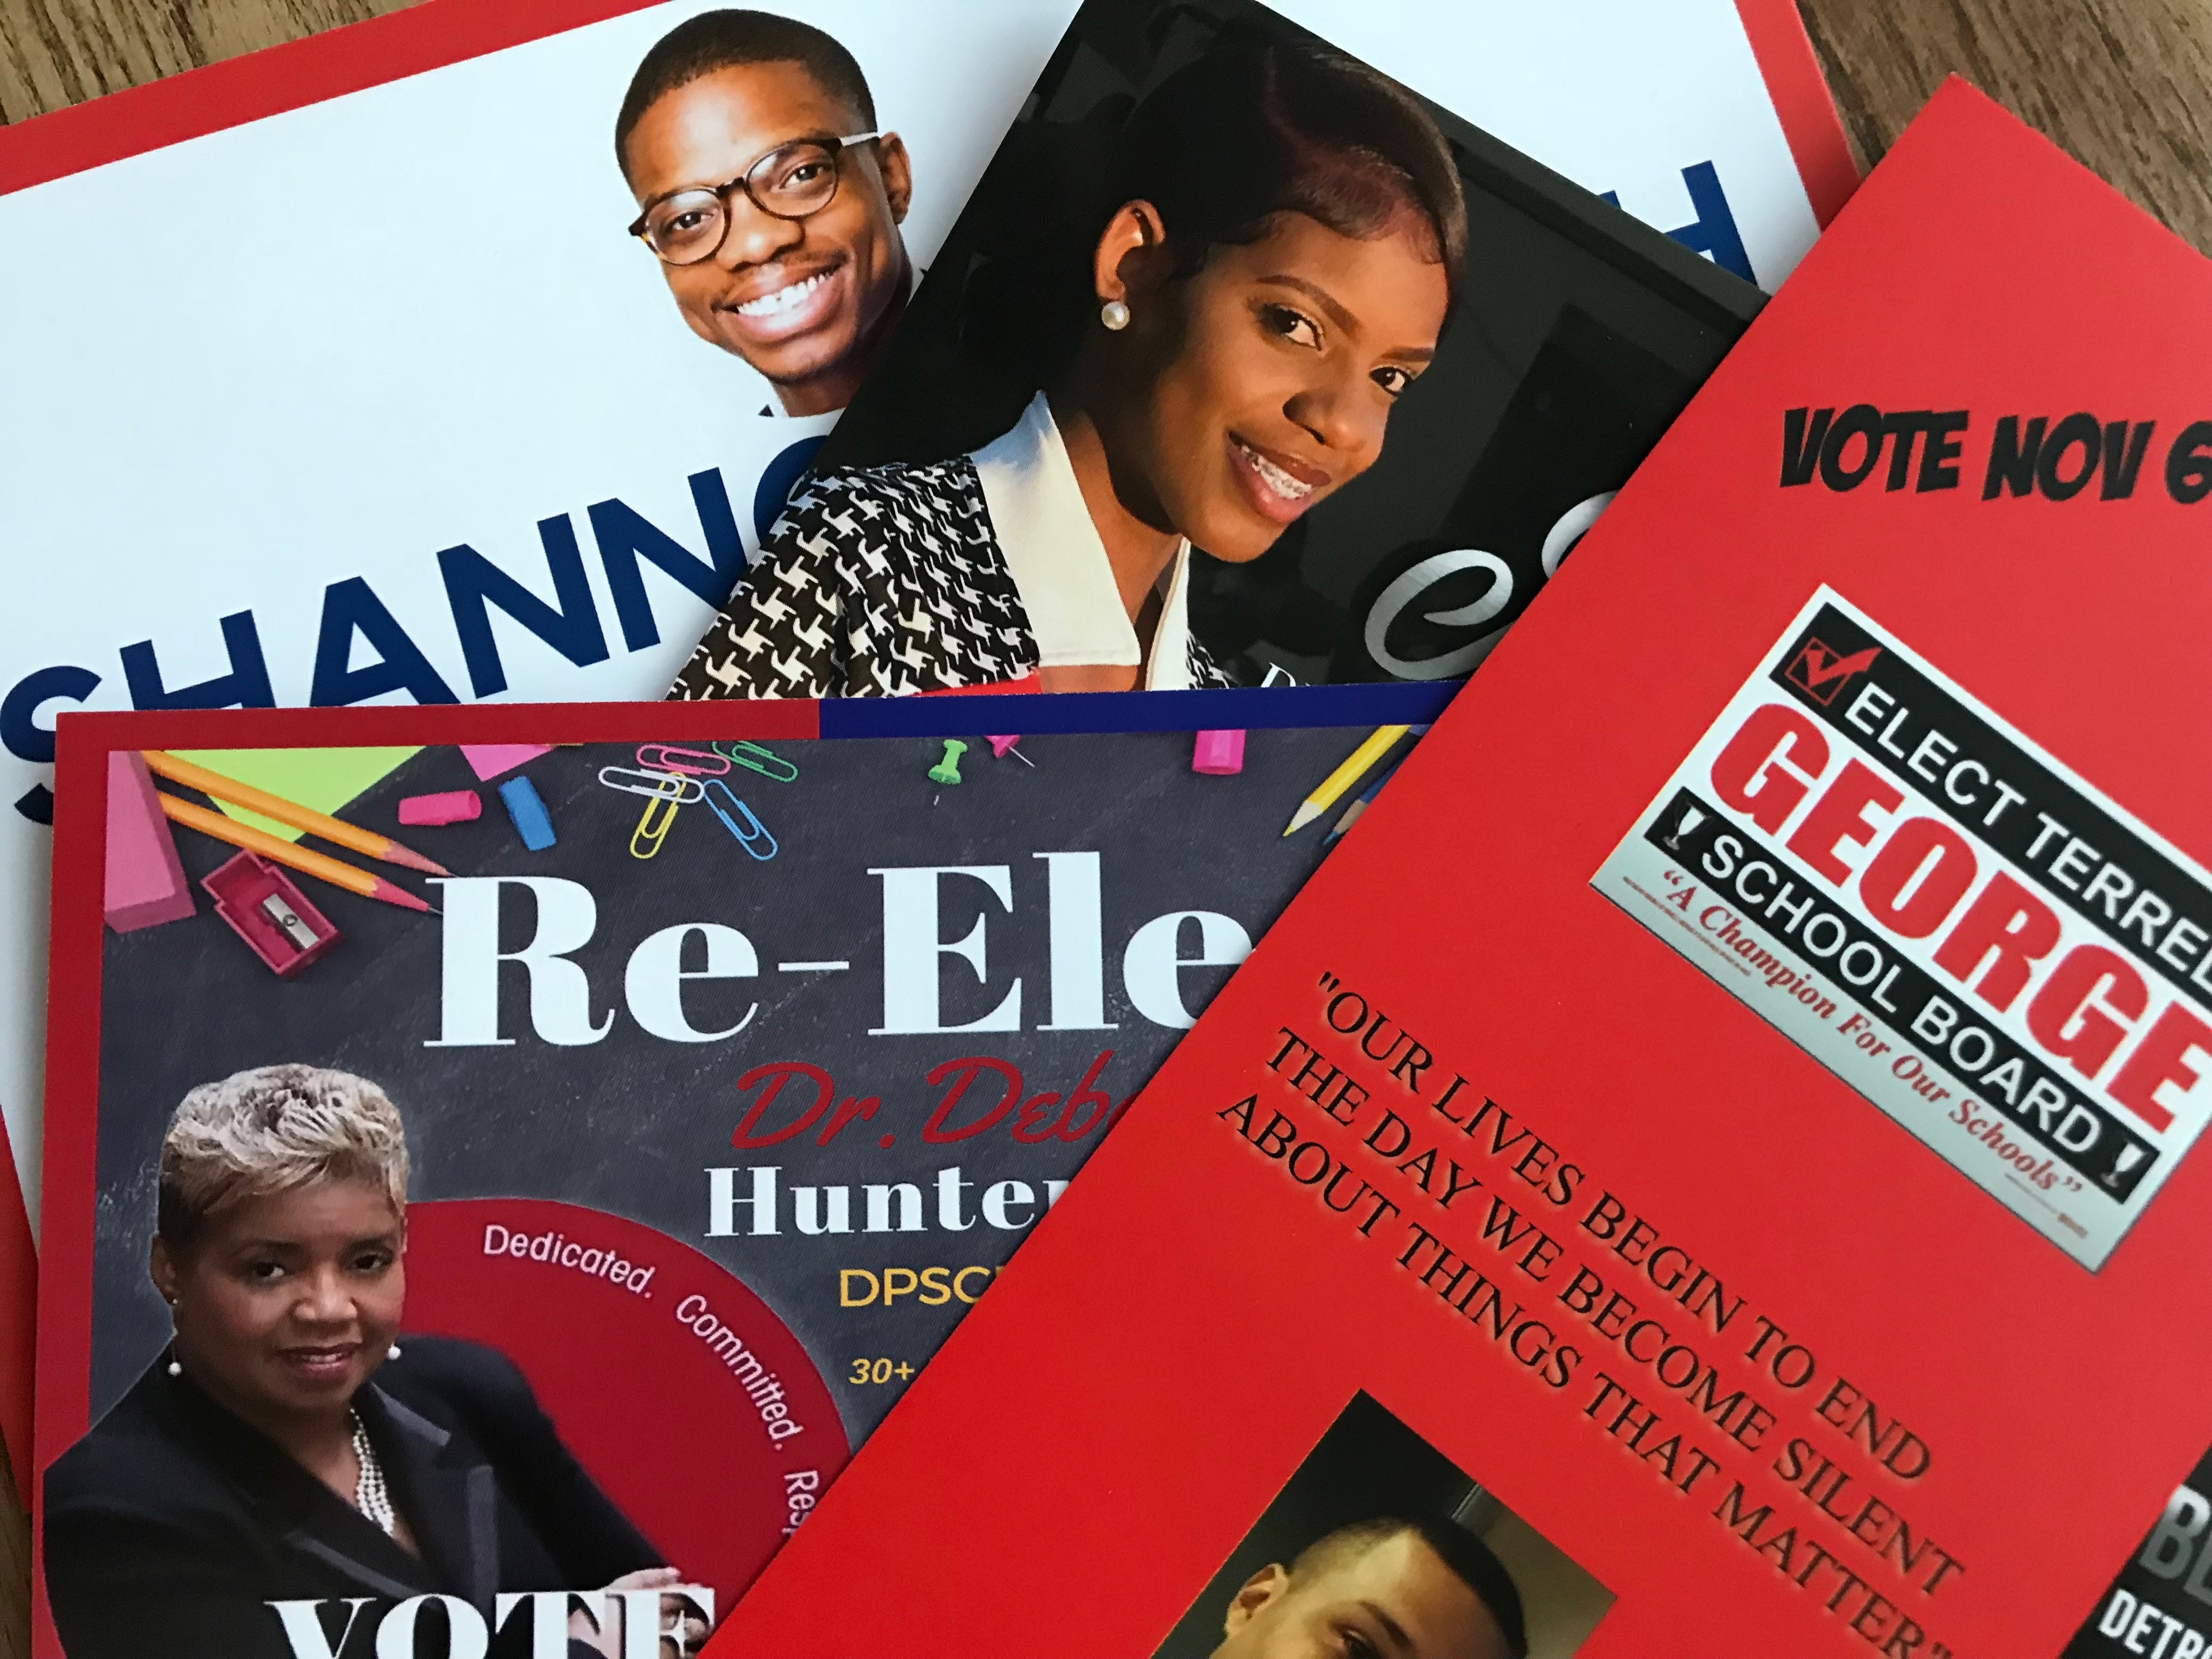 Eight candidates are running for two open seats on the Detroit school board.